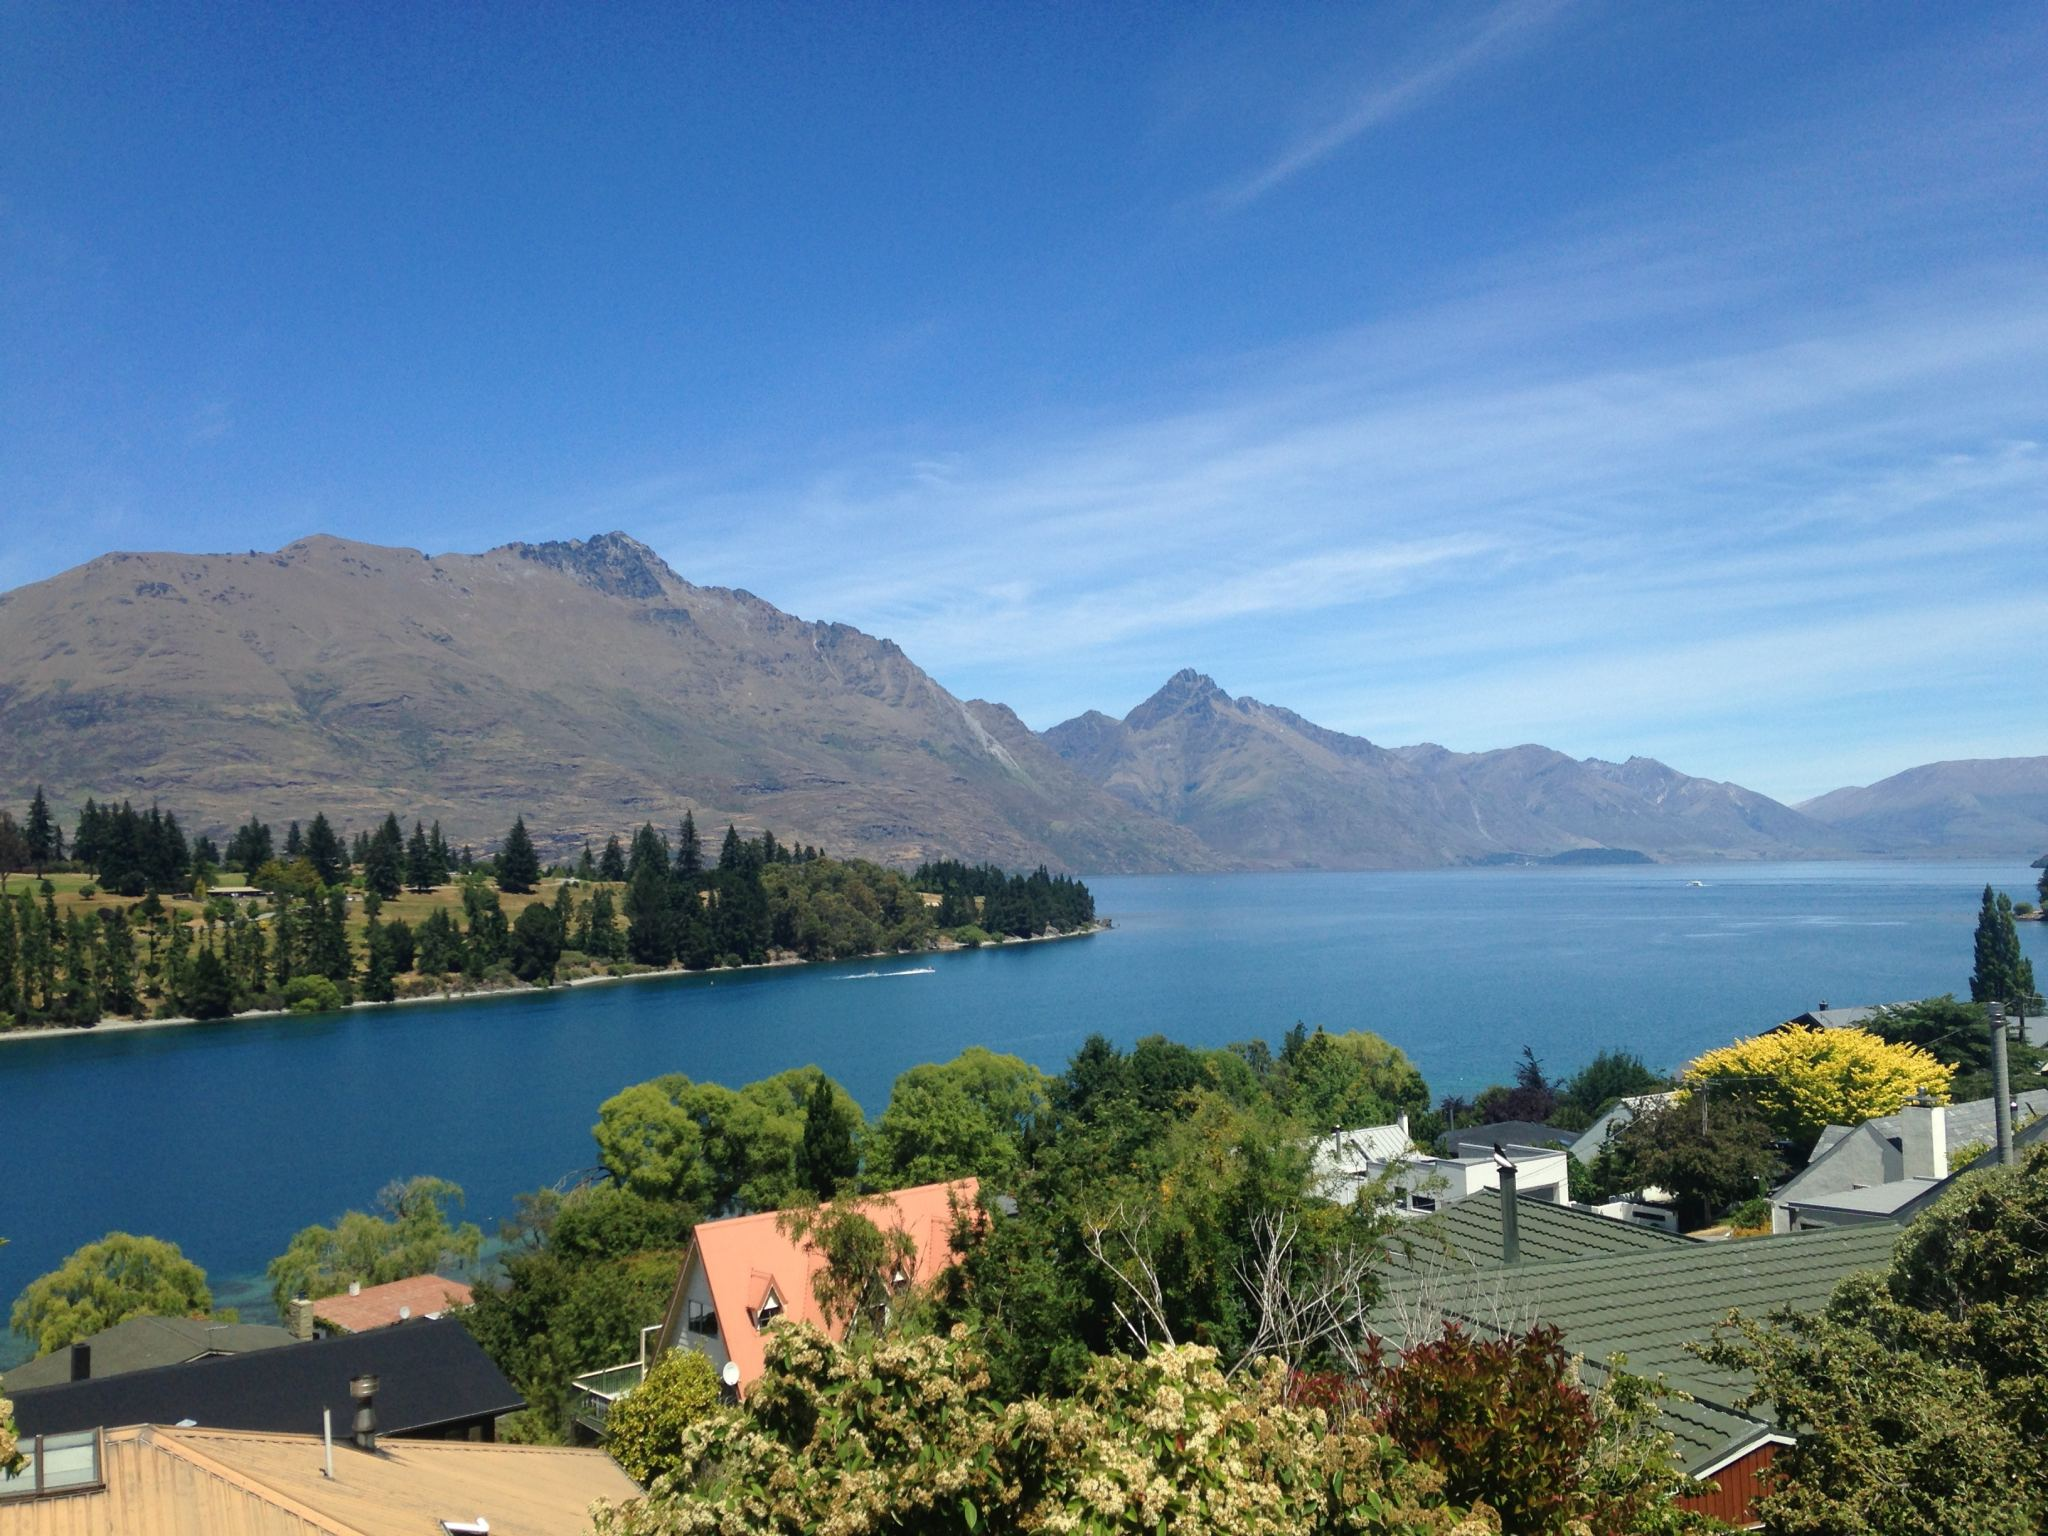 Why-New-Zealand-Is-The-Most-Beautiful-Place-On-Earth-The-Monica-Wong Blog-Travel